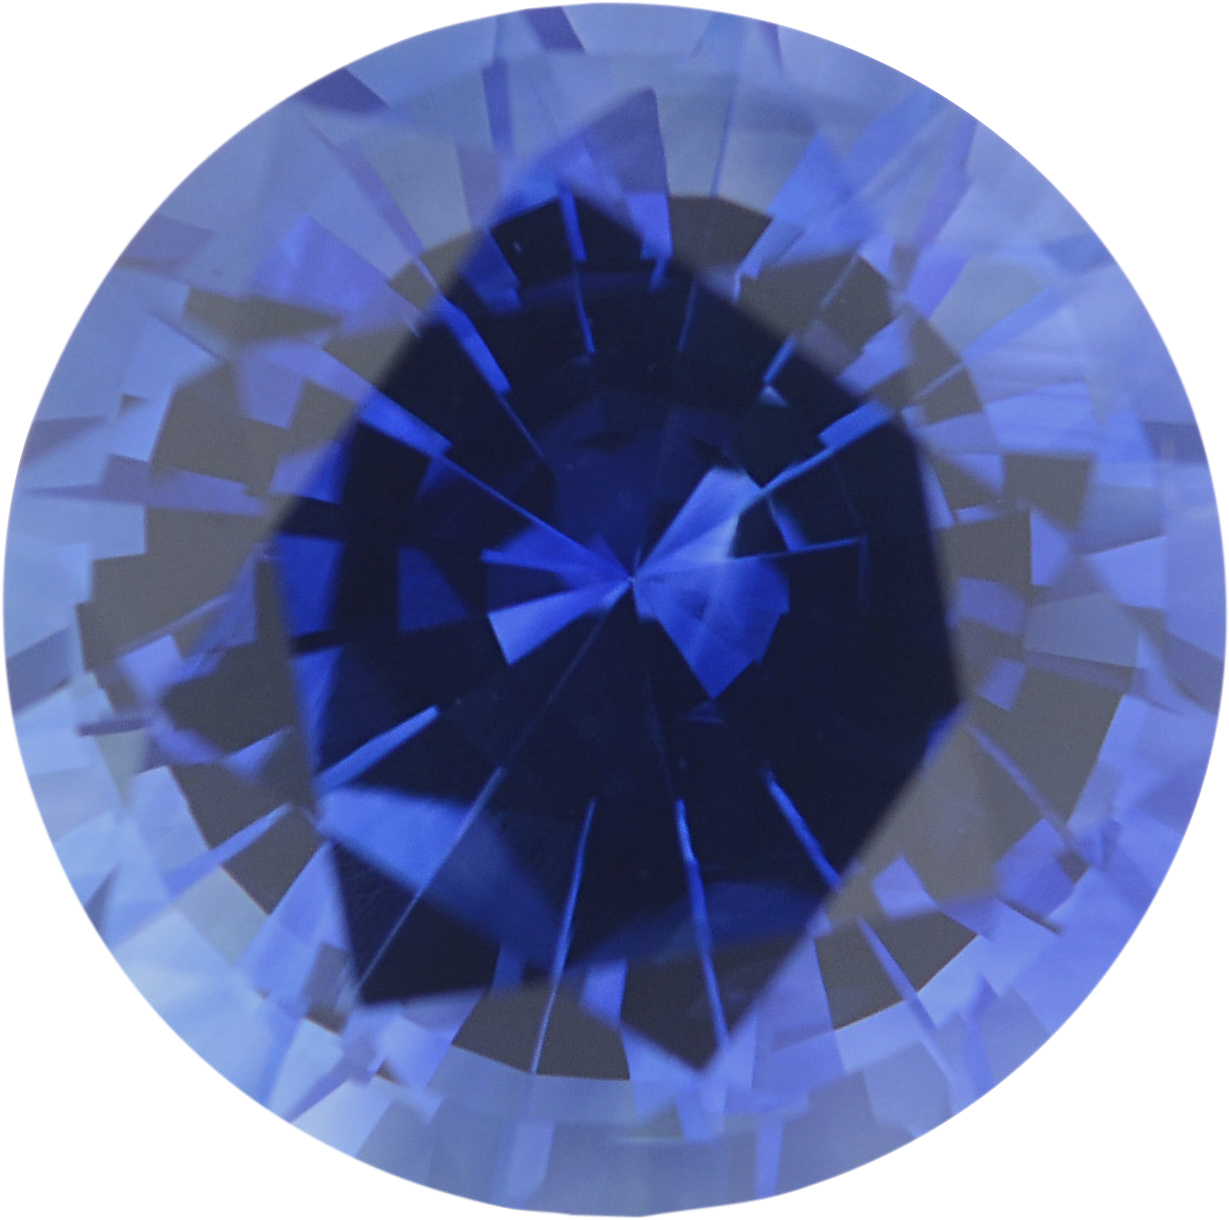 Natural Sapphire Loose Gem in Round Cut, Medium Violet Blue, 6.5 mm, 1.36 Carats